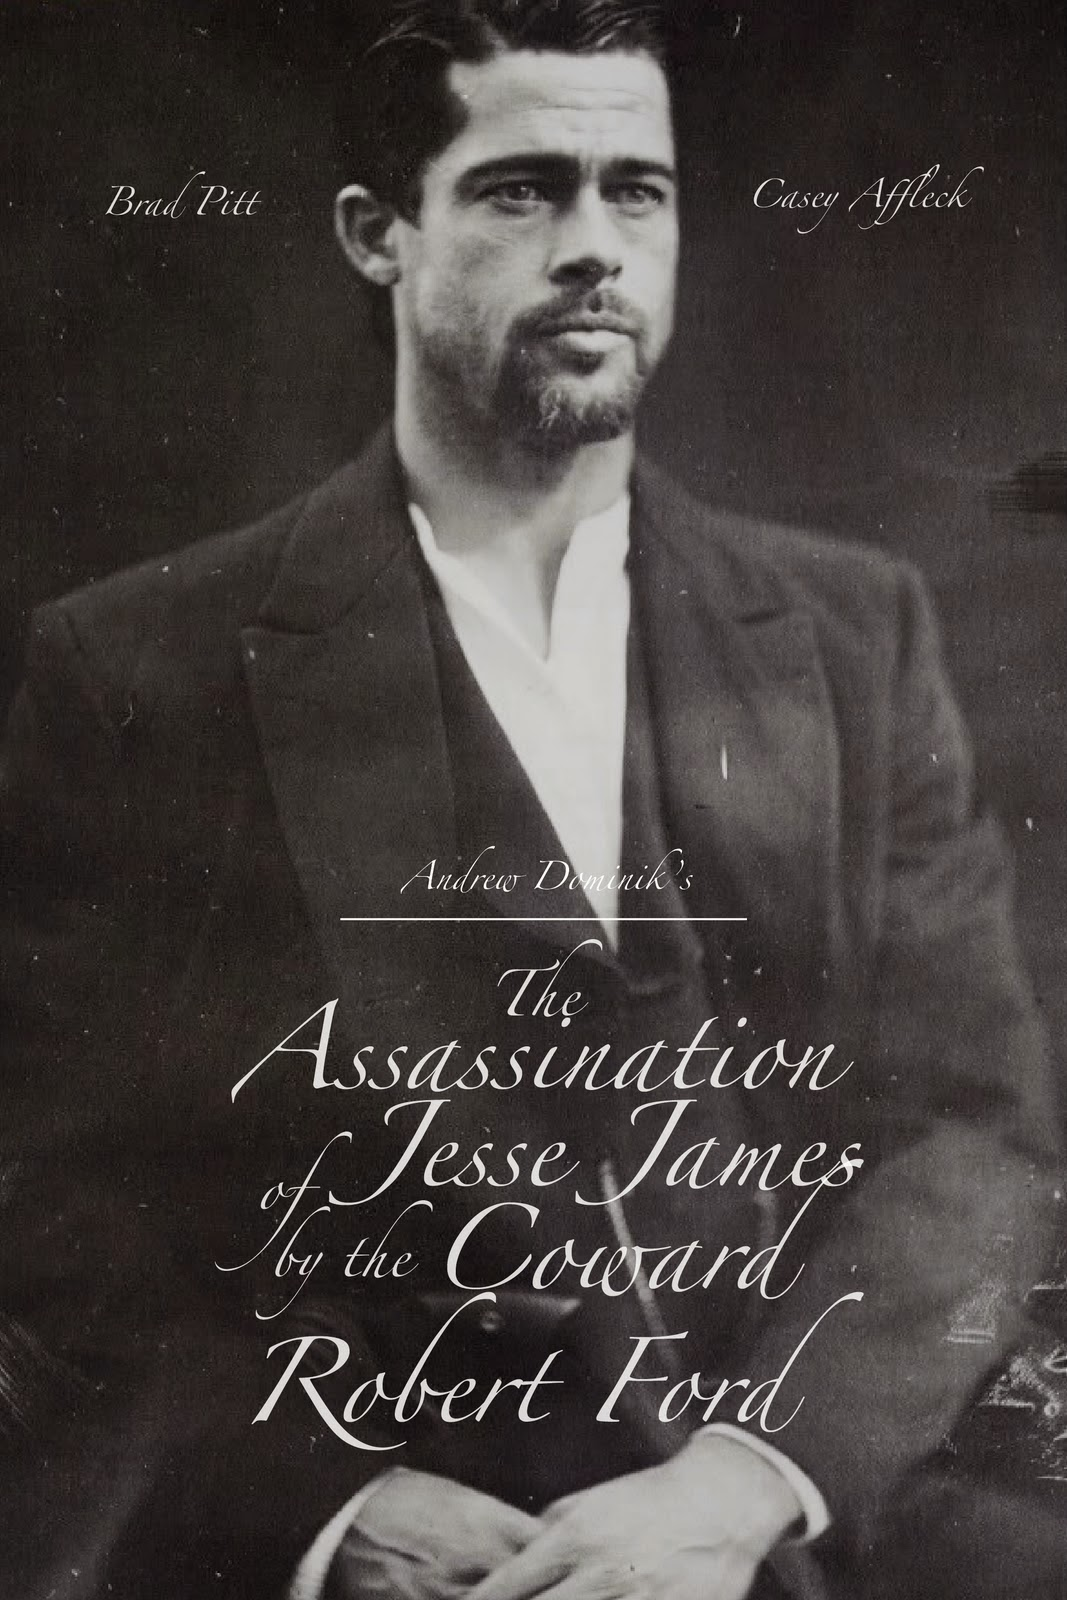 Assassination+of+Jesse+James+by+the+Coward+Robert+Ford.jpg